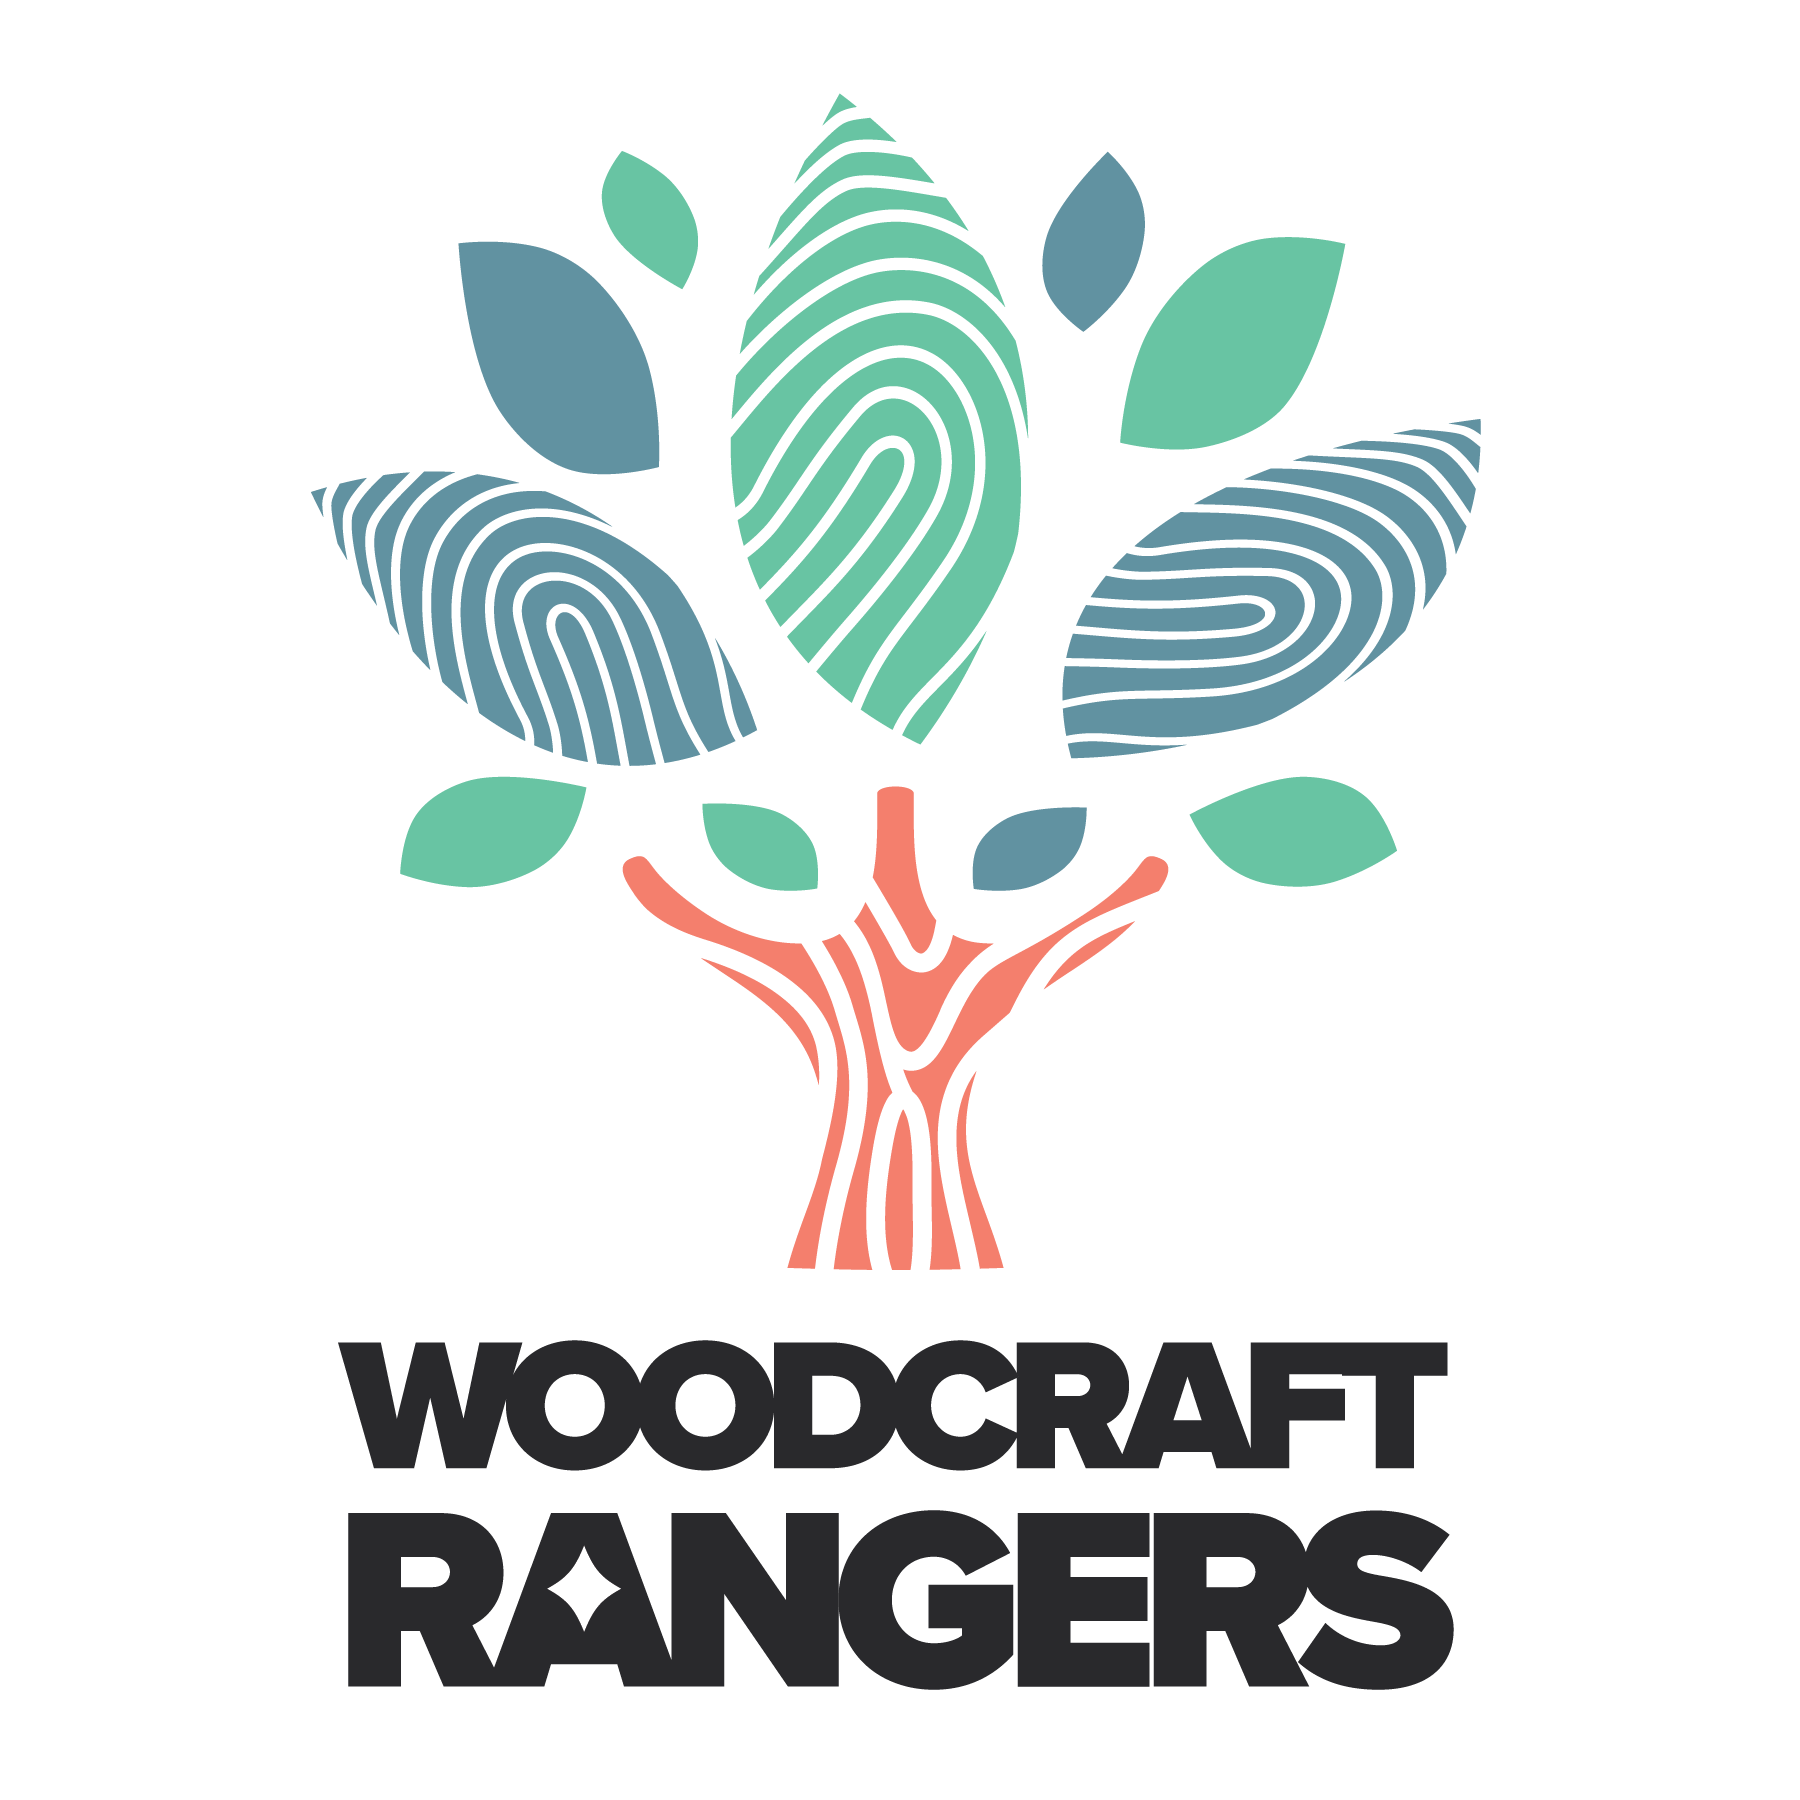 Woodcraft Rangers Logo - Full-color, stacked version